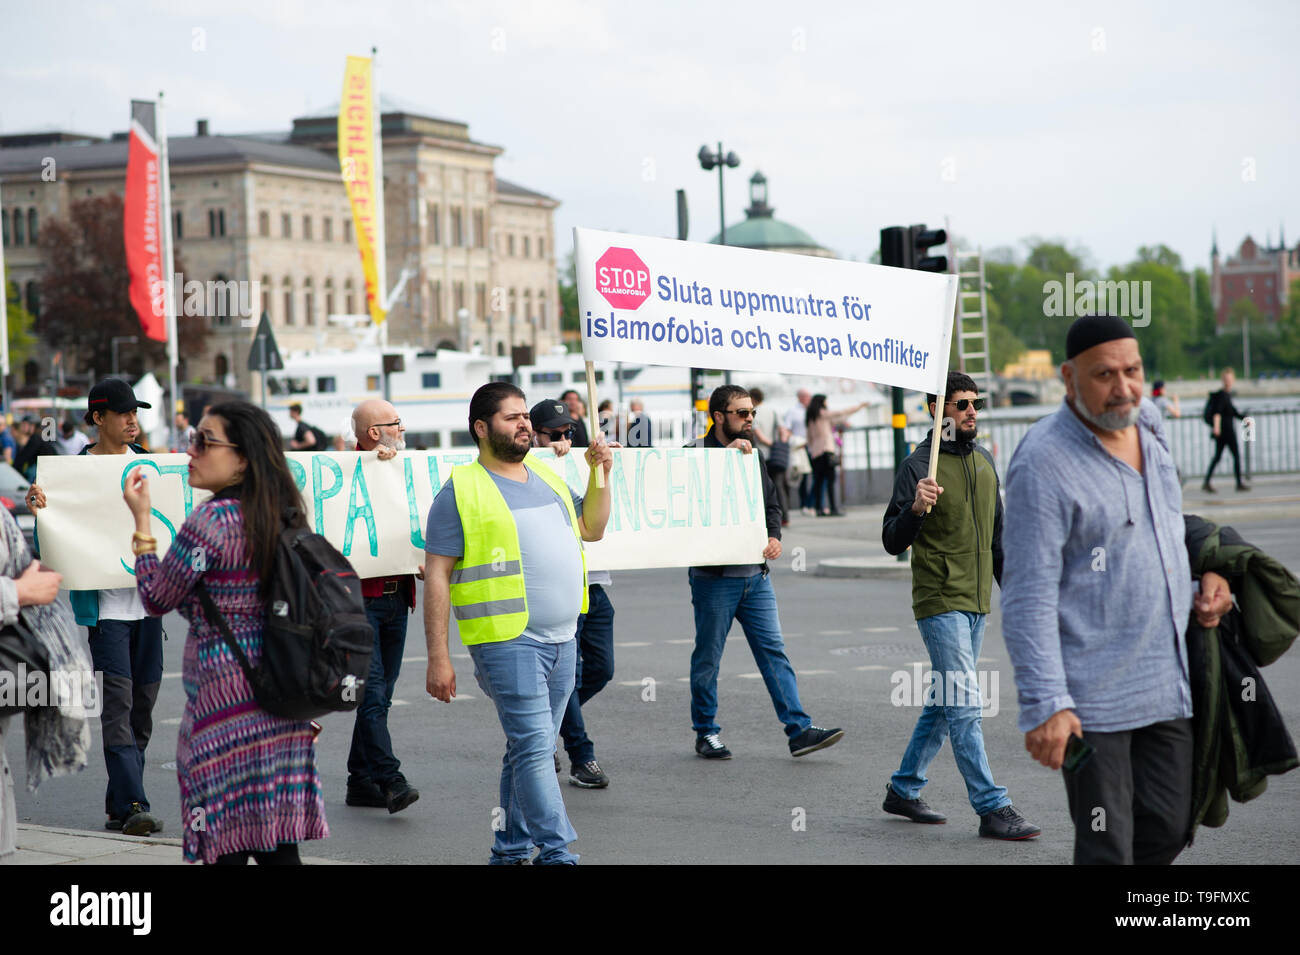 Stockholm, Sweden, May 18, 2019.  Demonstration for detained imams in Sweden.  In recent weeks, imams and Muslim leaders in Sweden have been taken in custody.  Three imams are now in custody: Abo Raad, imam of a mosque in Gävle, Hussein Al-Jibury, imam of a mosque in Umeå, and Fekri Hamad, imam of a mosque in Västerås. Raad's son is also being held. Abdel-Nasser el Nadi, chief executive of Vetenskapsskolan, is the fifth senior member of Sweden's Muslim community to be placed in custody in less than a month.    According to Swedish law, Swedish Security, Säpo, can deport anyone who is not a Swe Stock Photo